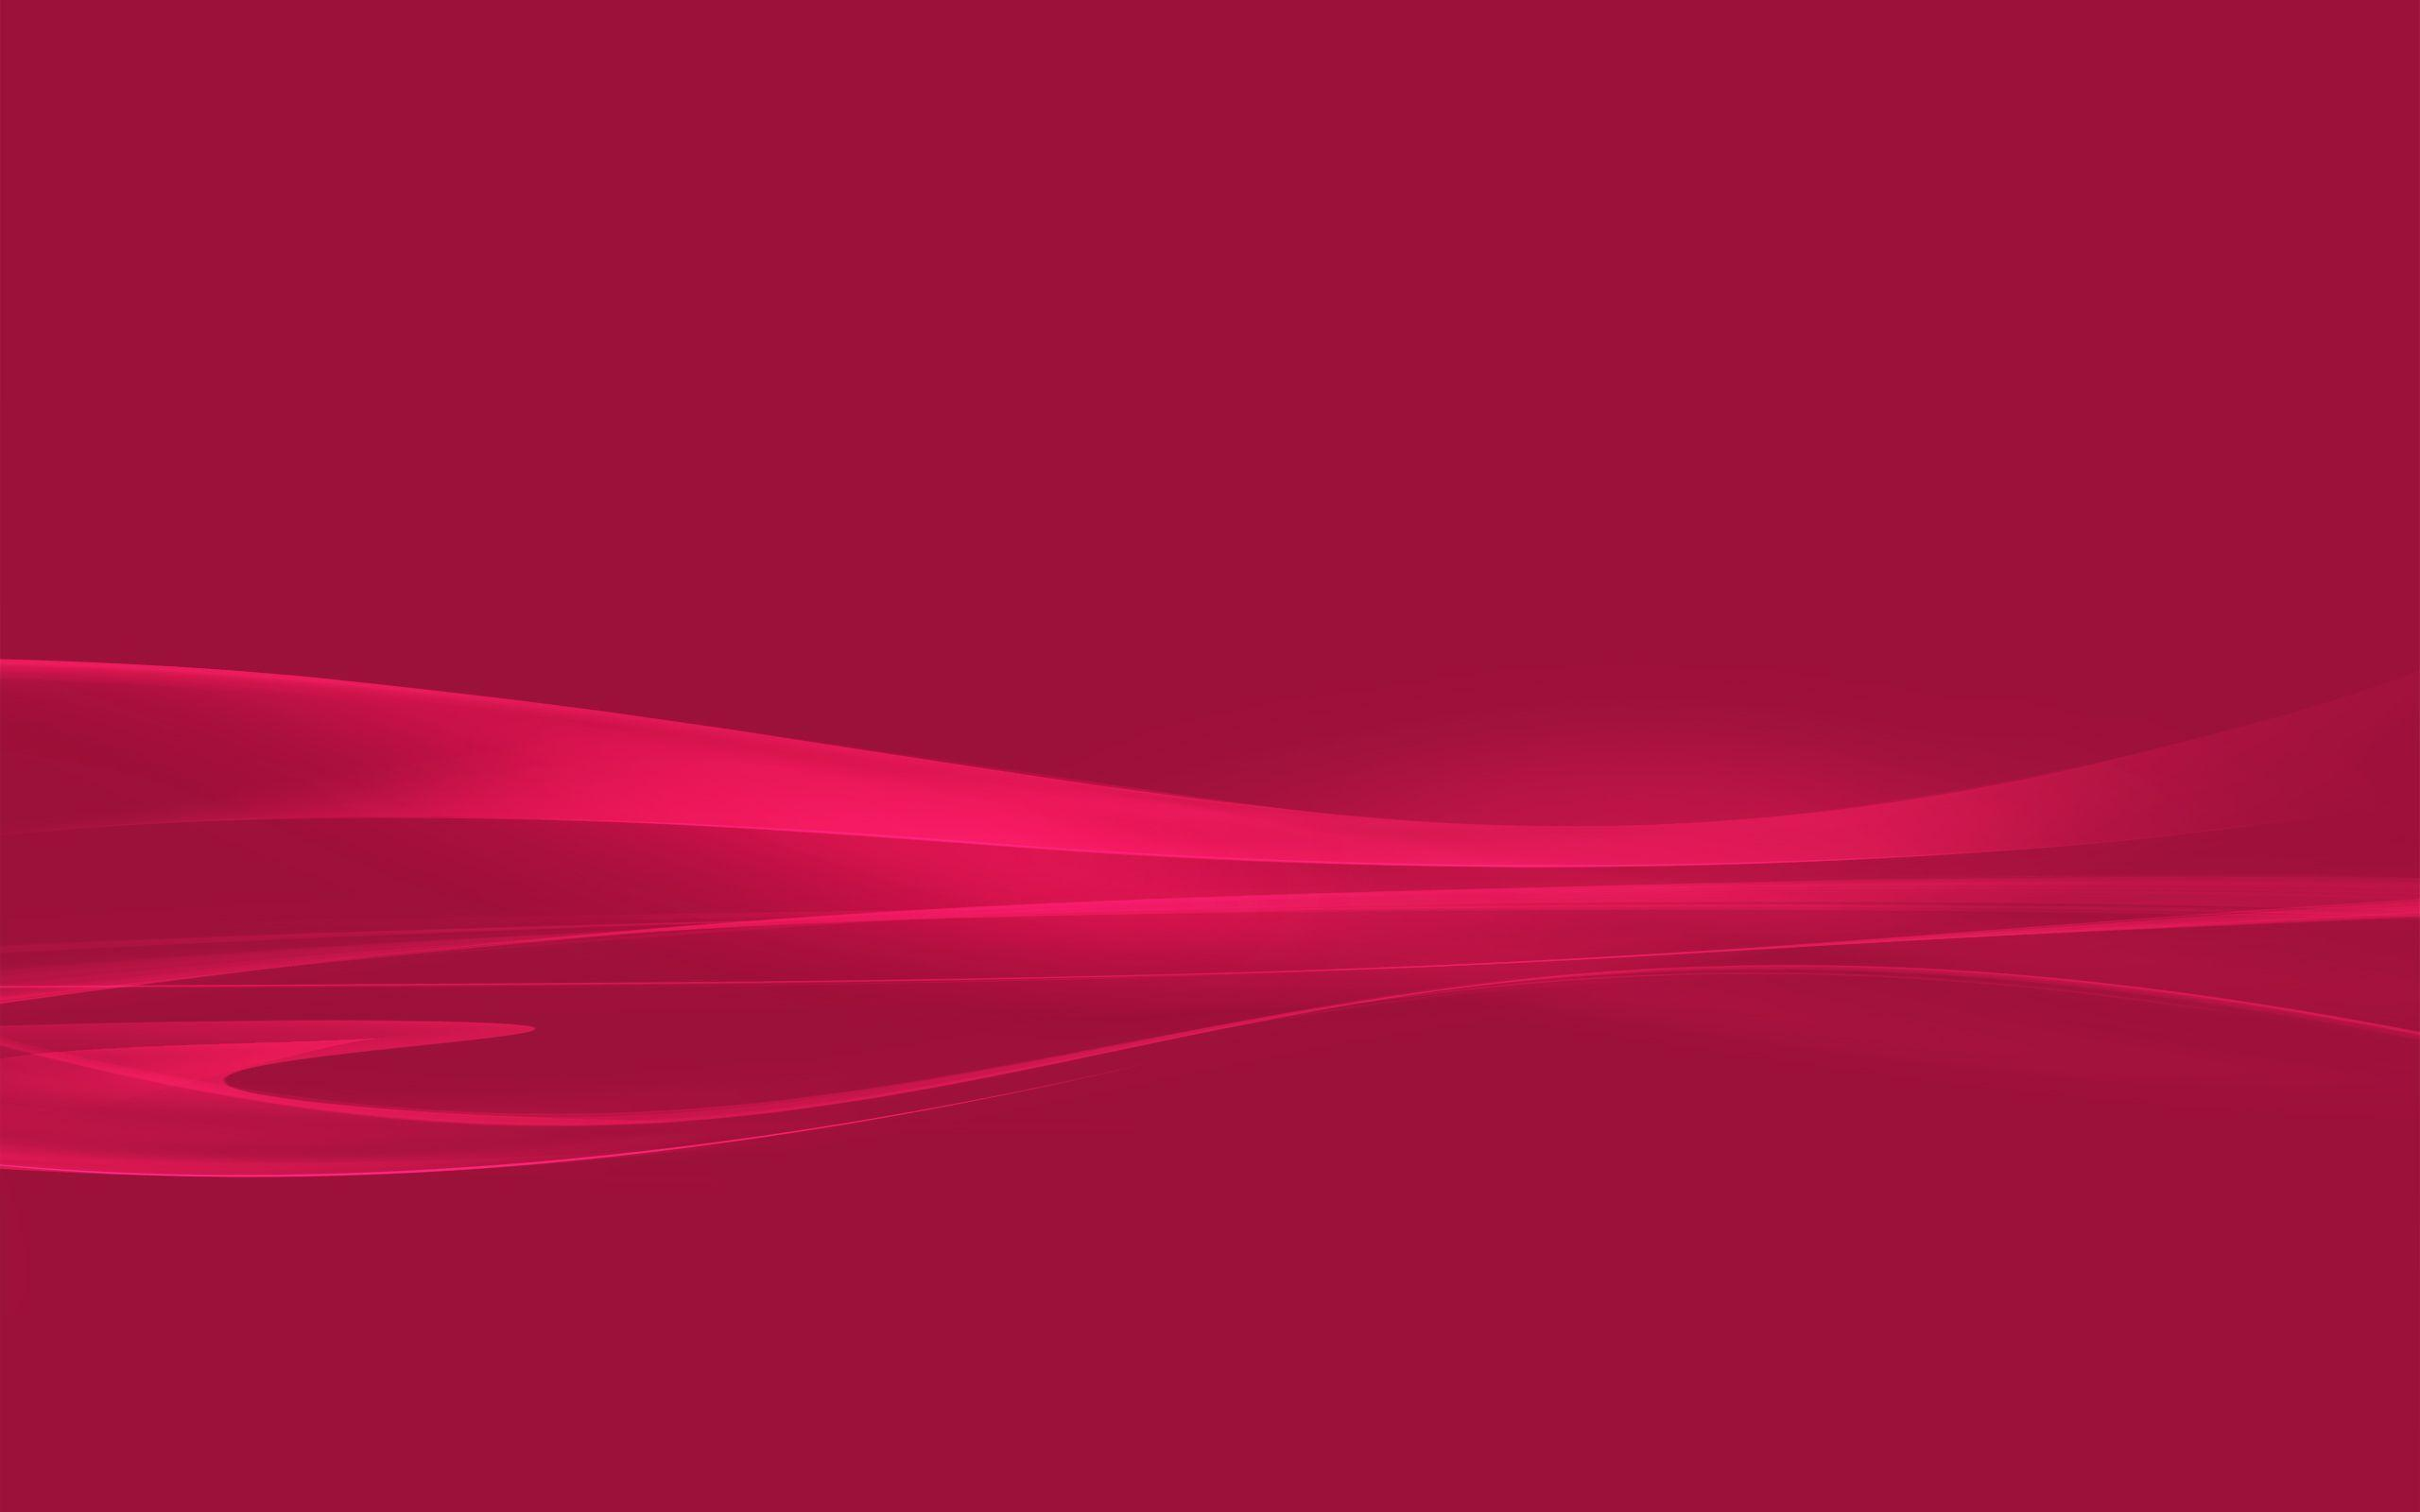 Plain Red Wallpapers HD - Wallpaper Cave